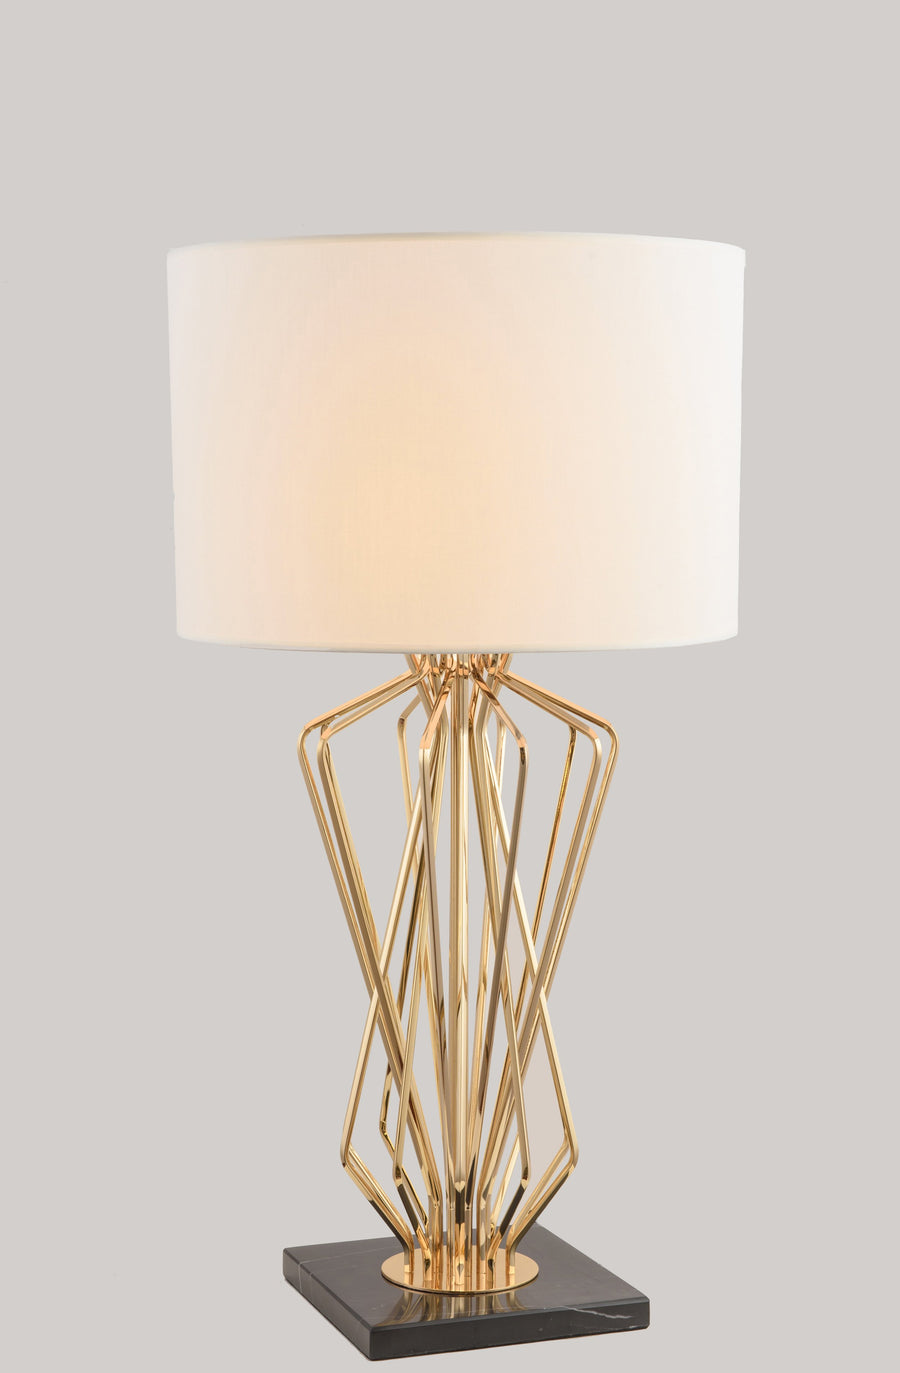 Grimaldi Table Lamp